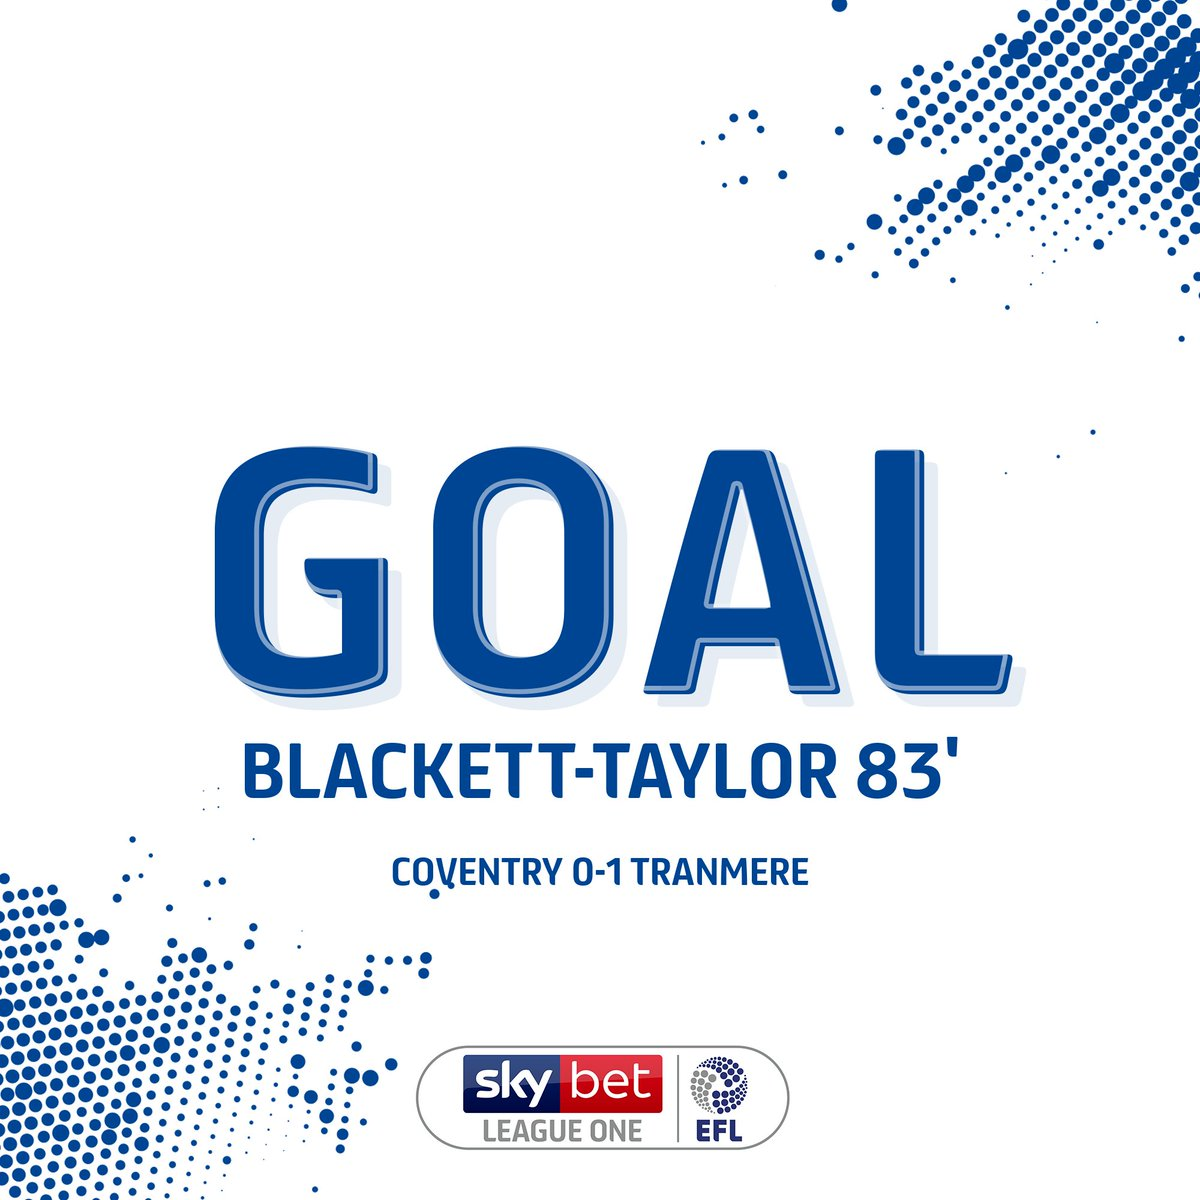 GOAL! @TranmereRovers break the deadlock late on! Could that be the winner? #EFL | #TRFC